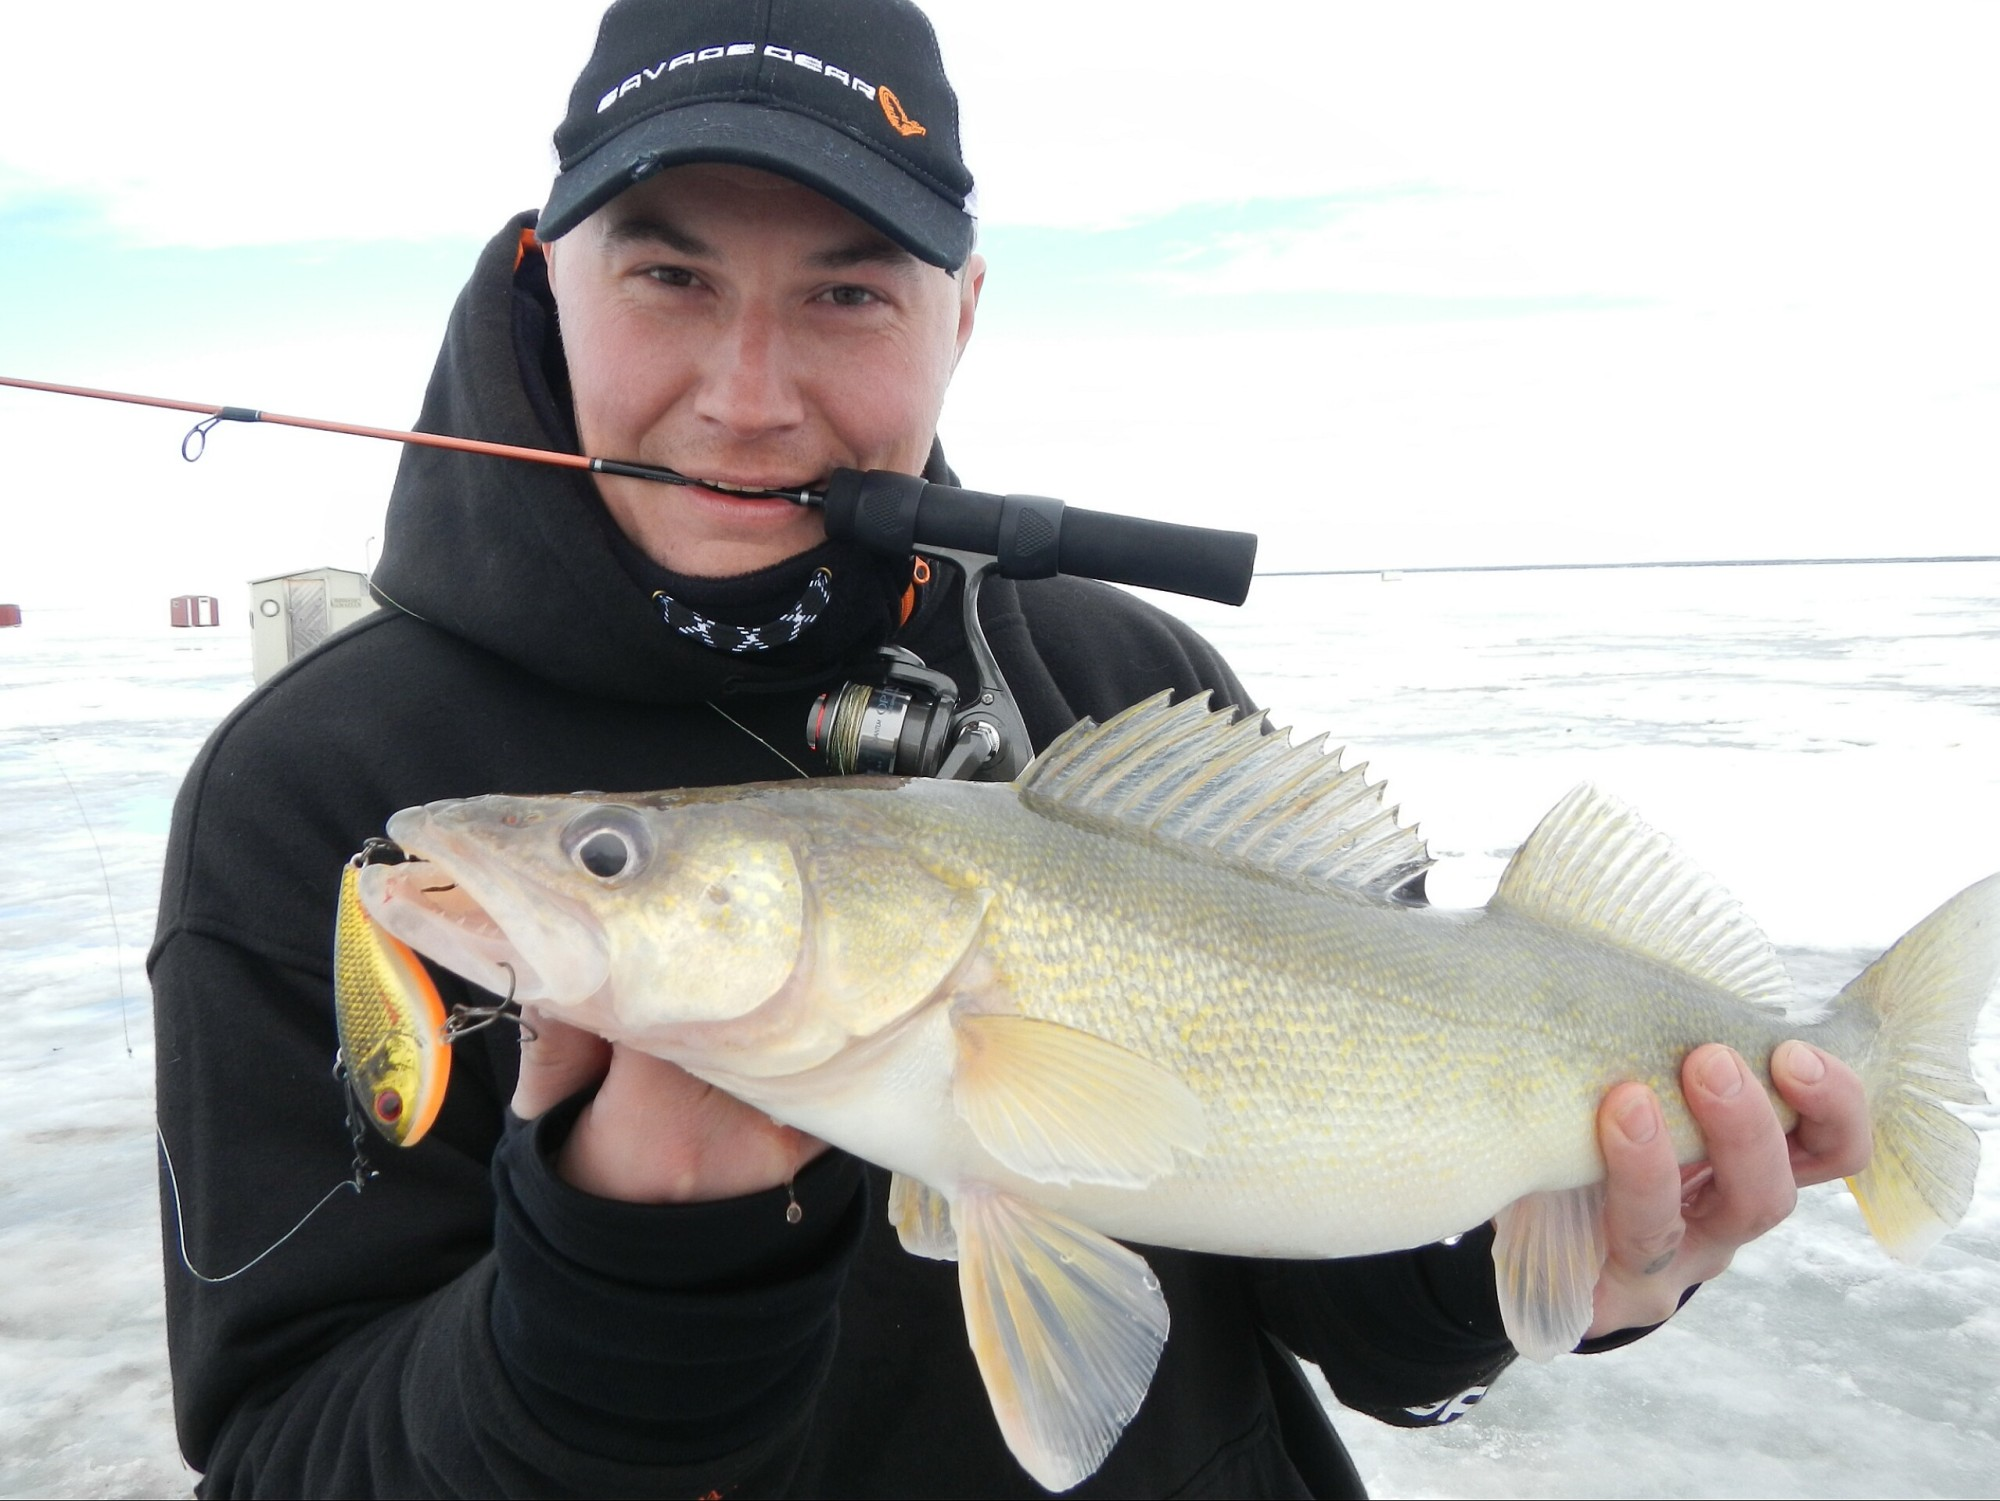 Fat vibe candy for walleye steve bell angler for Ice fishing for walleye